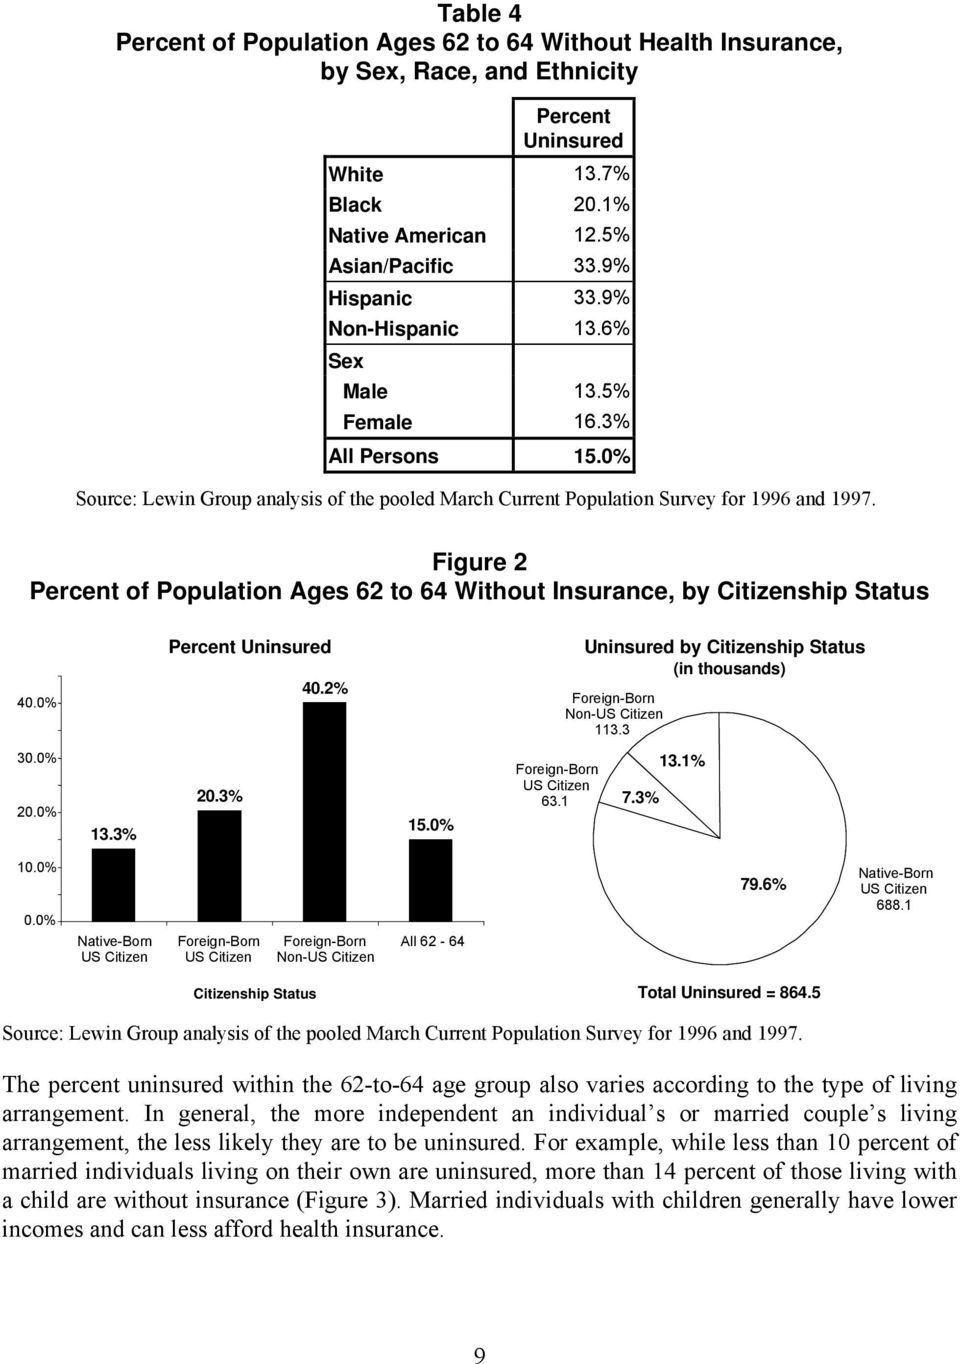 Figure 2 Percent of Population Ages 62 to 64 Without Insurance, by Citizenship Status 40.0% Percent Uninsured 40.2% Uninsured by Citizenship Status (in thousands) Foreign-Born Non-US Citizen 113.3 30.